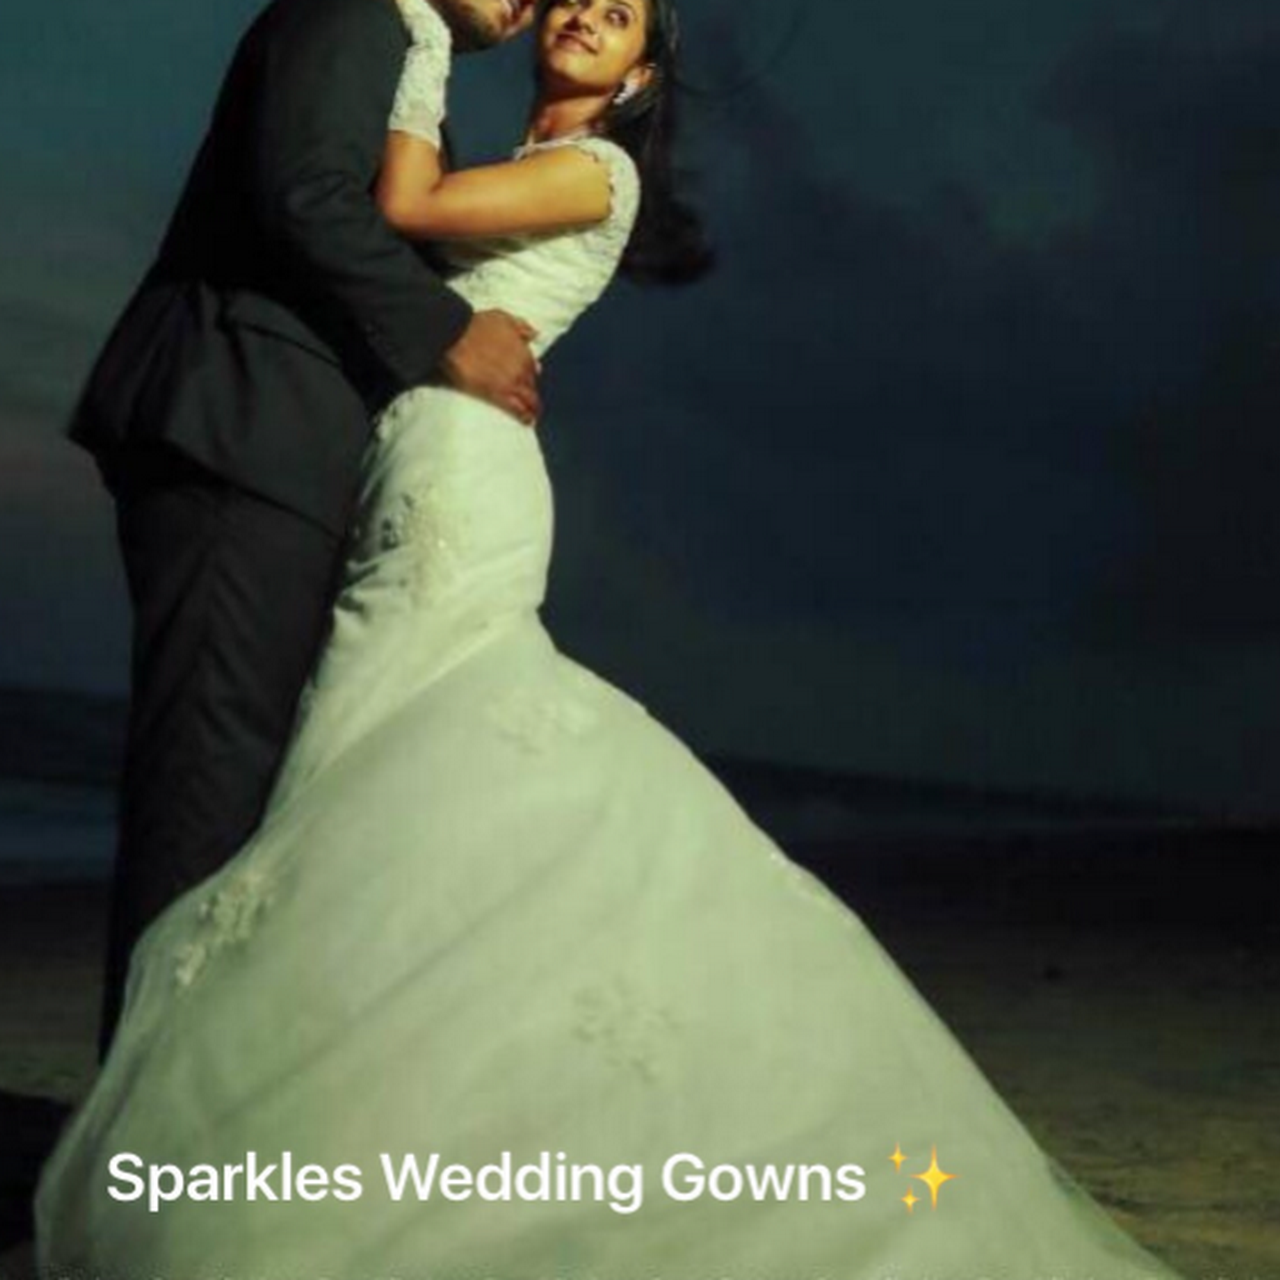 SPARKLES WEDDING GOWNS✨ Gowns Specialist. WEDDING GOWNS IN ...